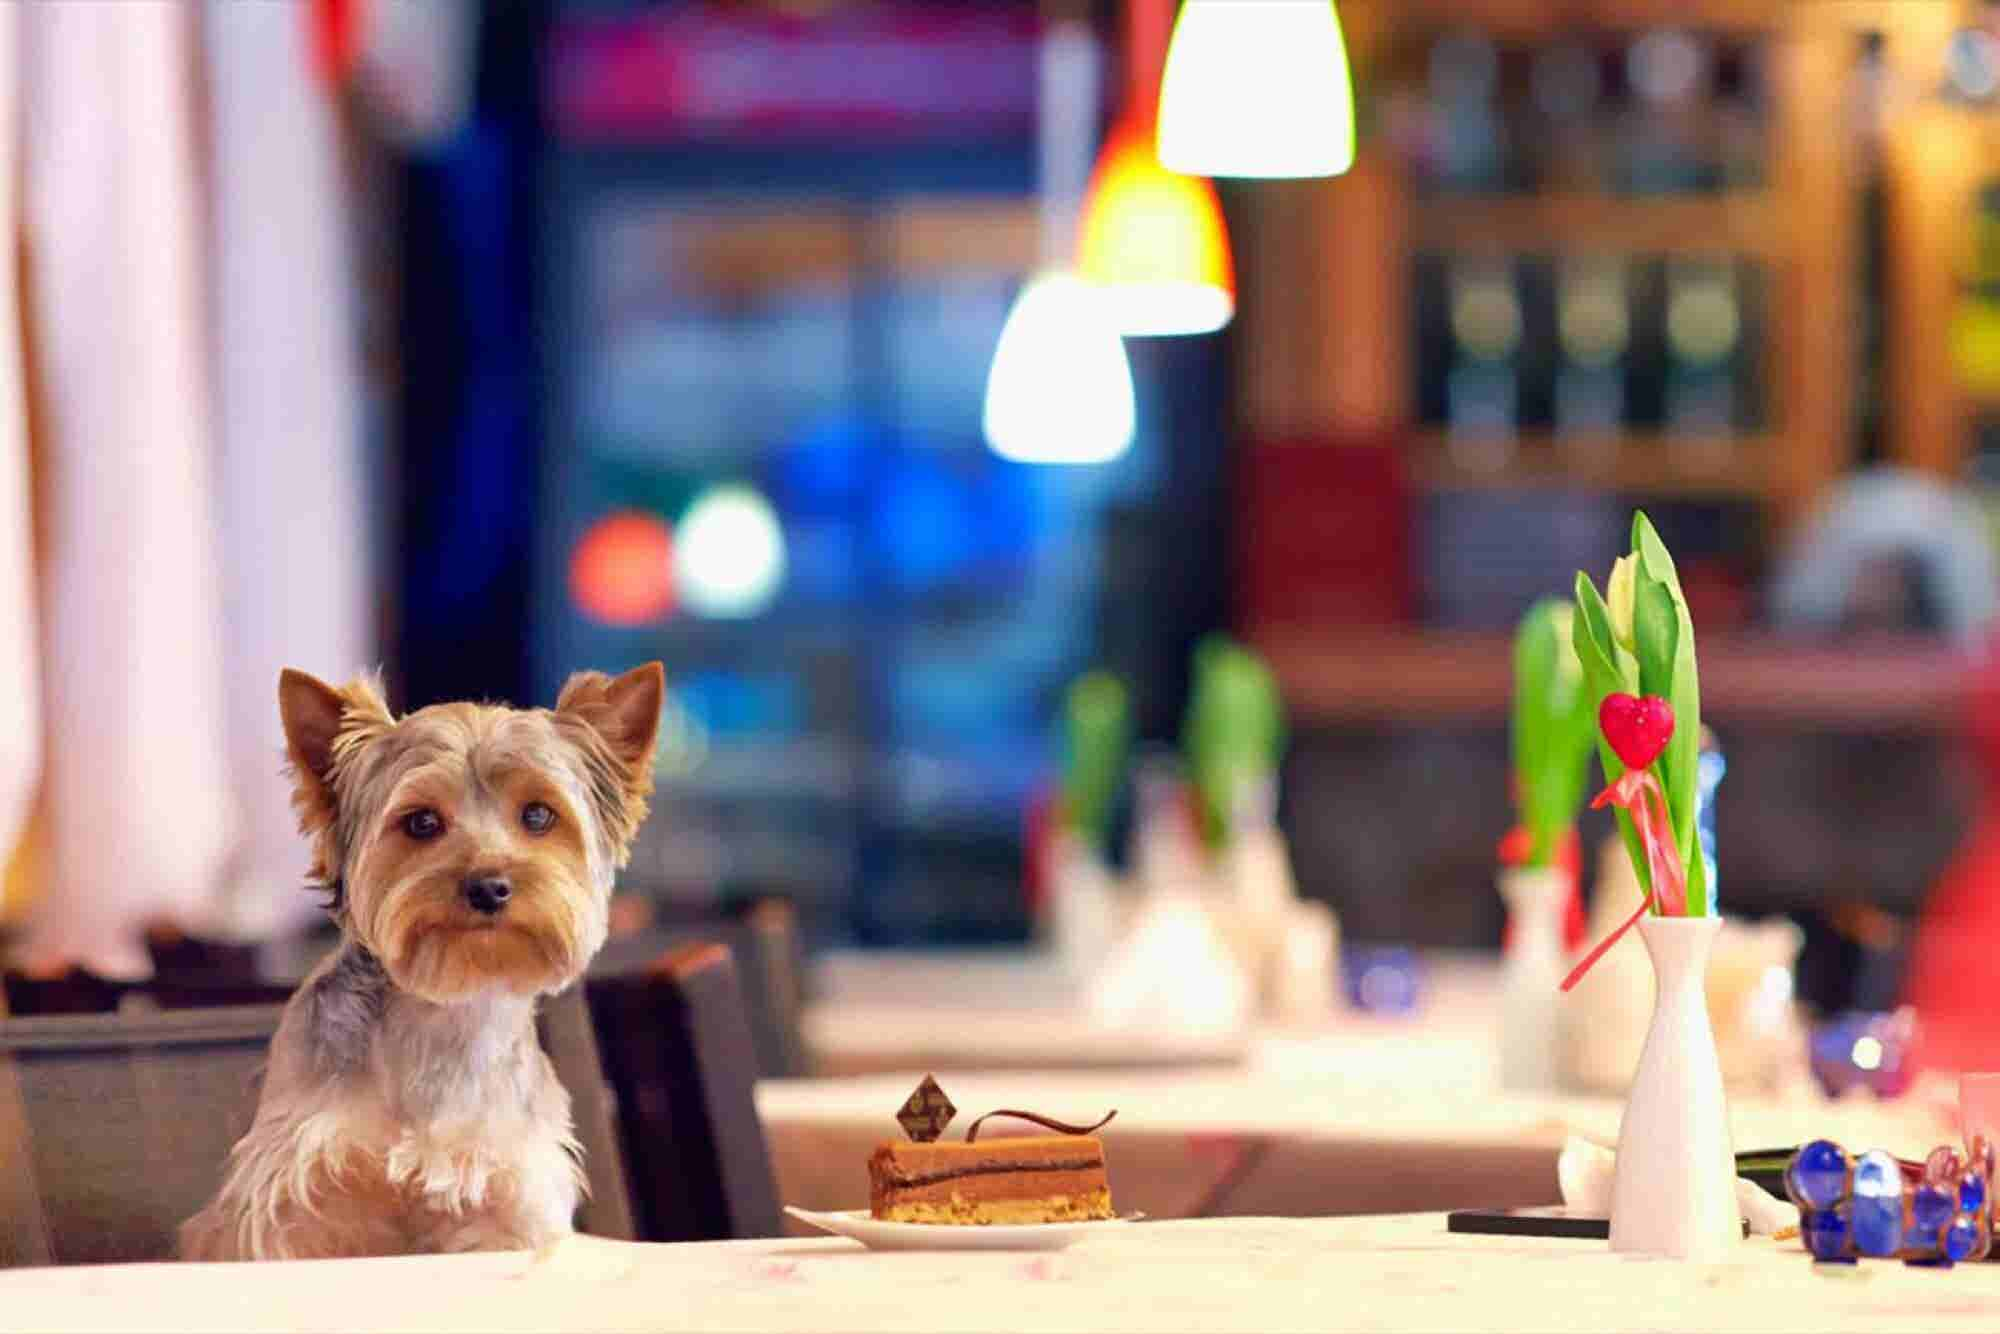 Forget Cat Cafes, It's Time for a Coffee Joint for Dogs